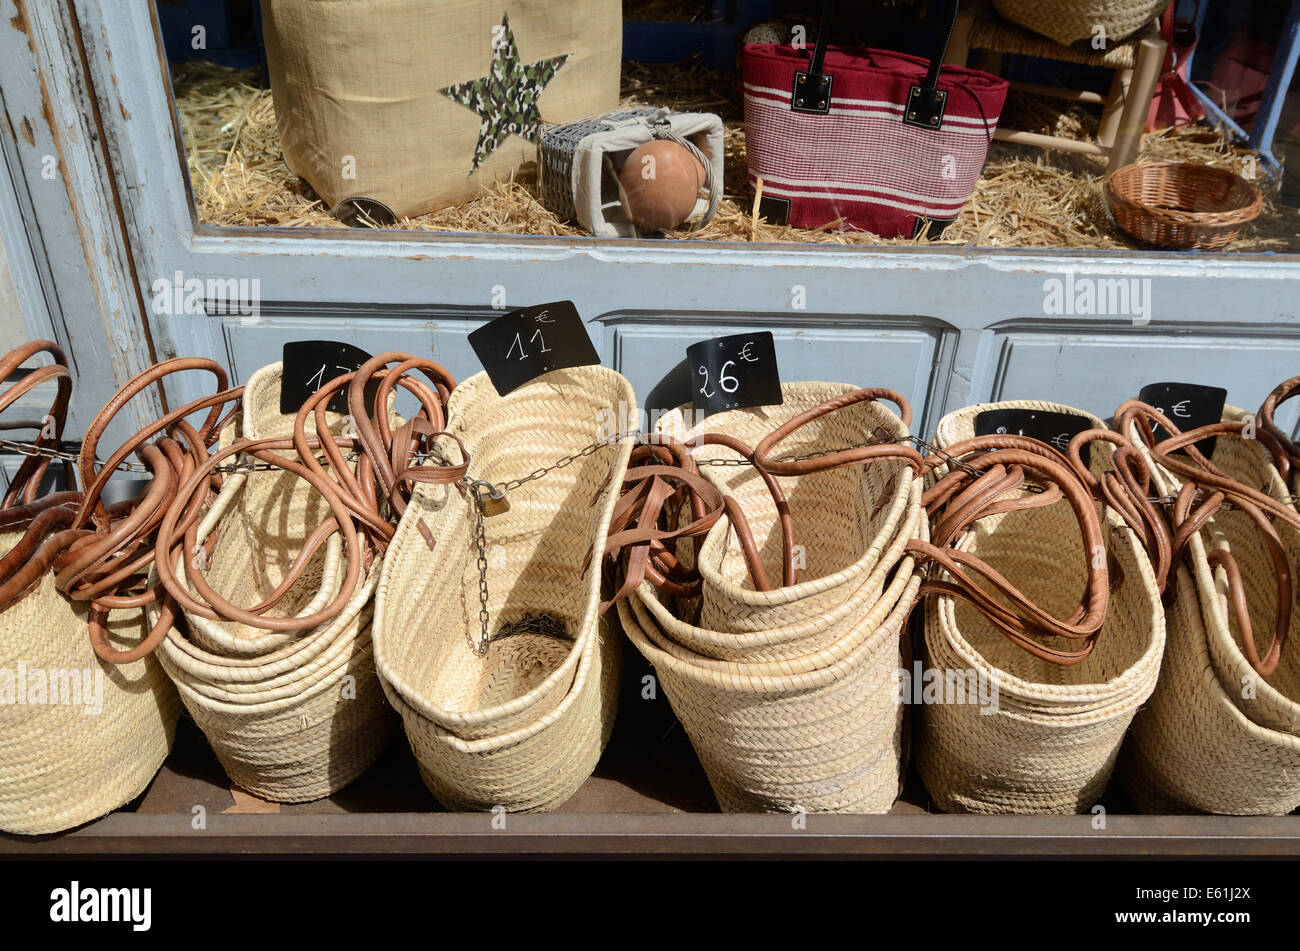 Traditional Shopping Baskets for Sale Outside Bag Shop or Stall ...